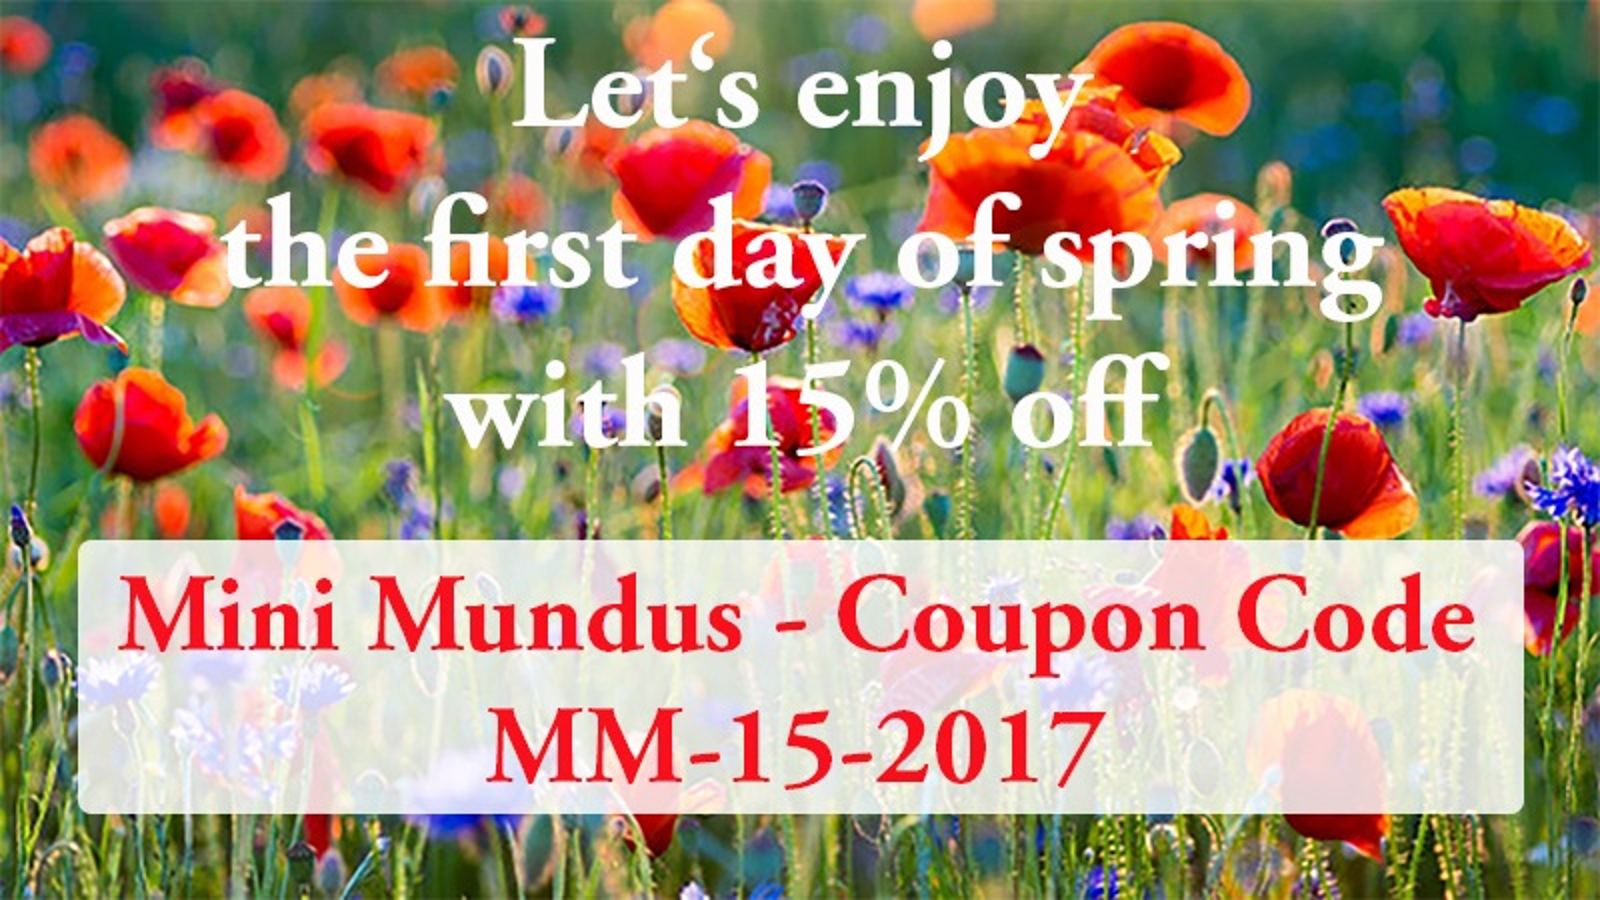 Valid until 26 March 2017 - Voucher can be used several times - No minimum order